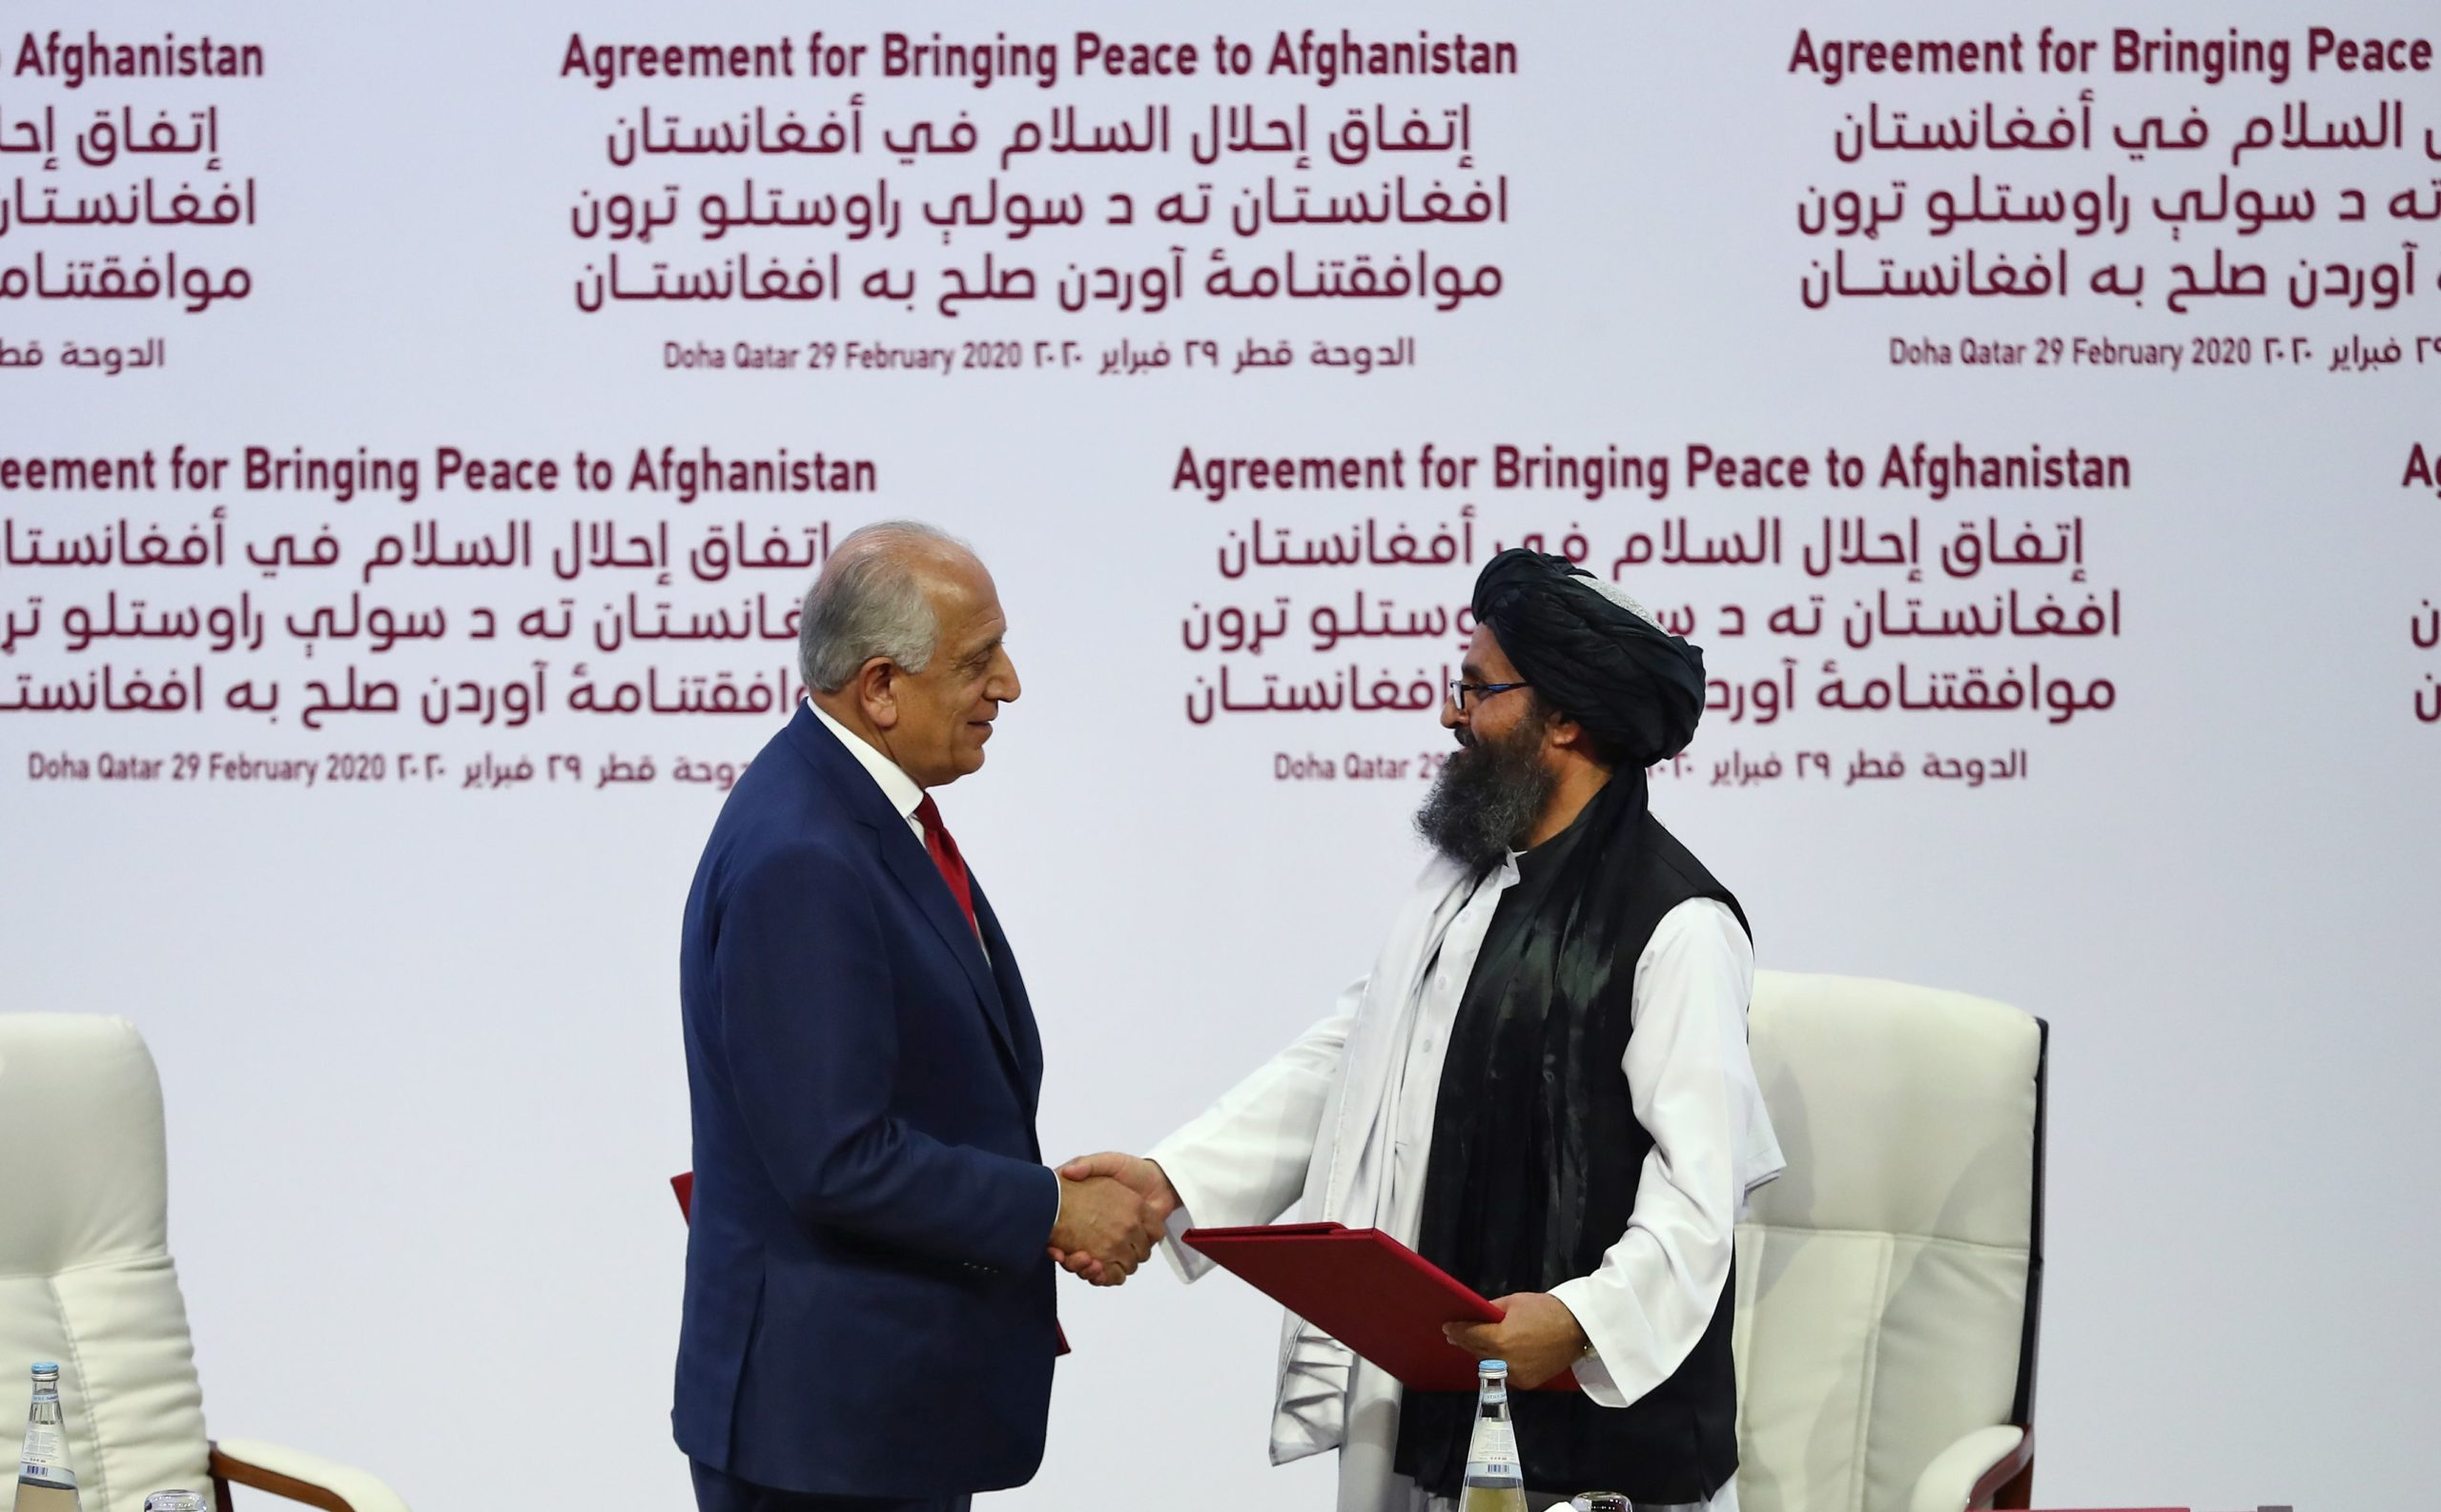 US Special Representative Zalmay Khalilzad and Taliban co-founder Mullah Abdul Ghani Baradar meeting in Doha, Qatar in February for peace talks.